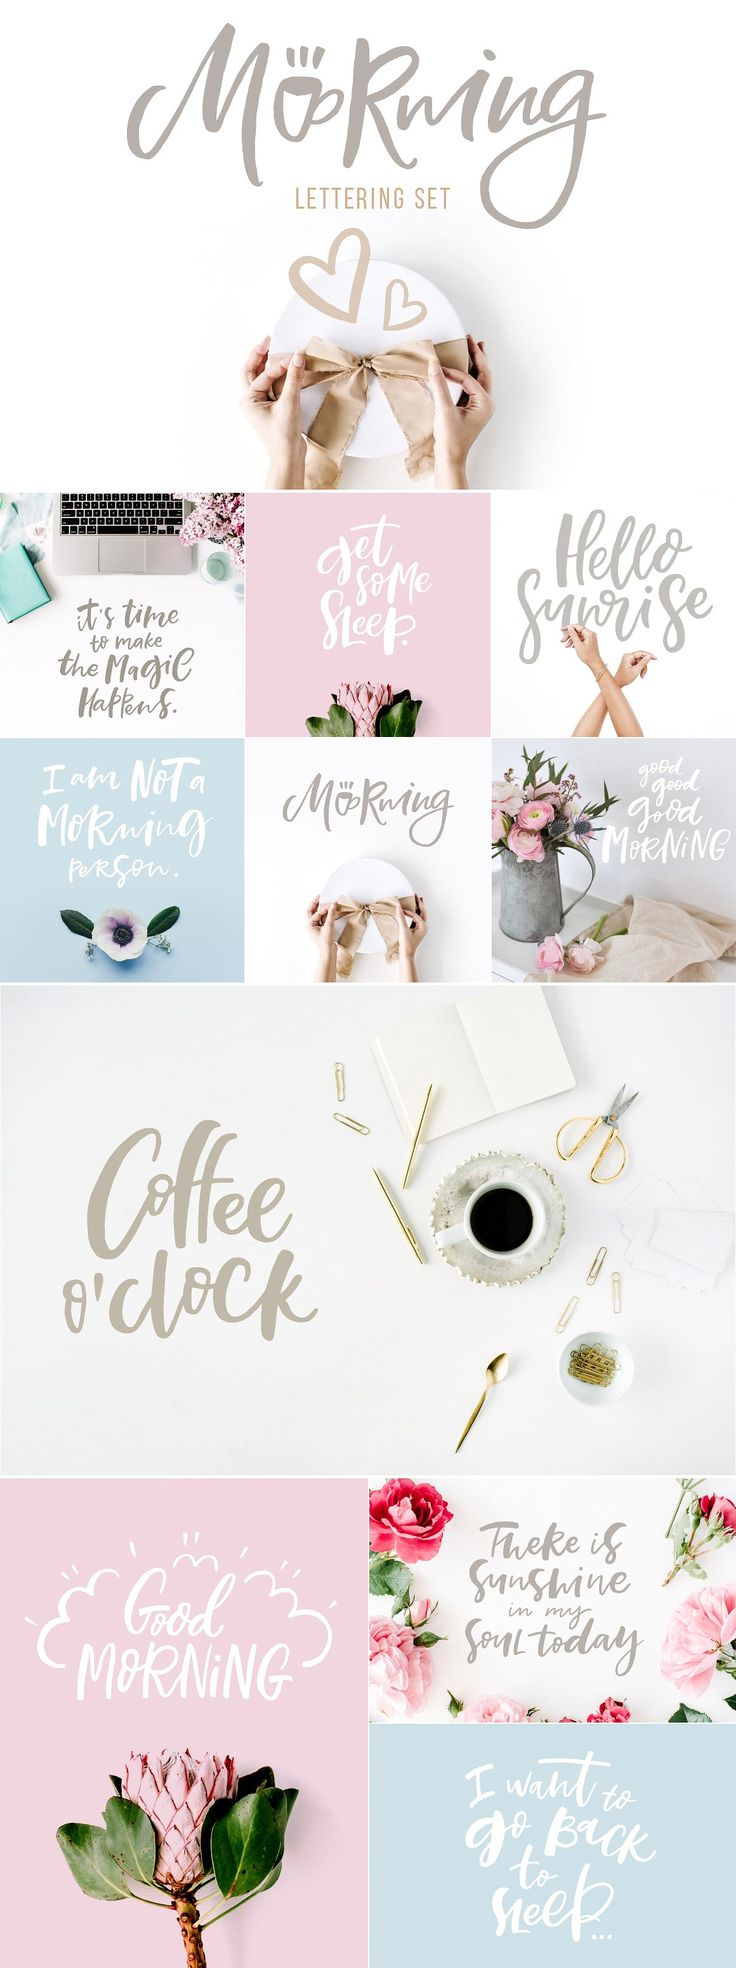 This bundle includes 30 hand written quotes and words, you can check them all out in the preview. Perfect for social media like Instagram. And also it's great for mugs, pillows, T-shirts and greeting cards. All quotes are hand lettered so no fonts are used. Colors can be changed, but text is not editable!